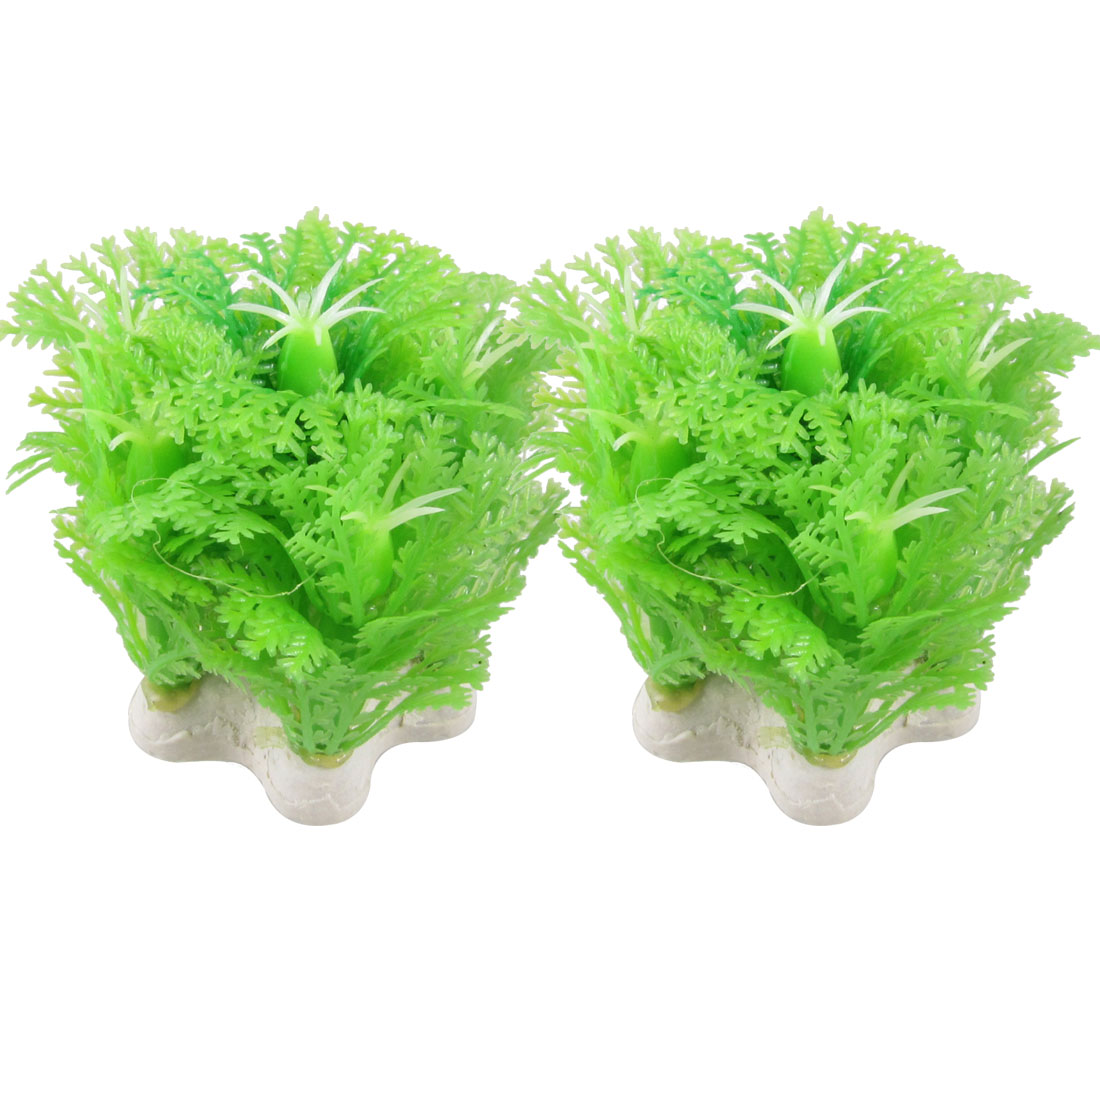 "2 Pcs Manmade Green Plastic Plant Grass Ornament 2.3"" for Aquarium Fish Tank"